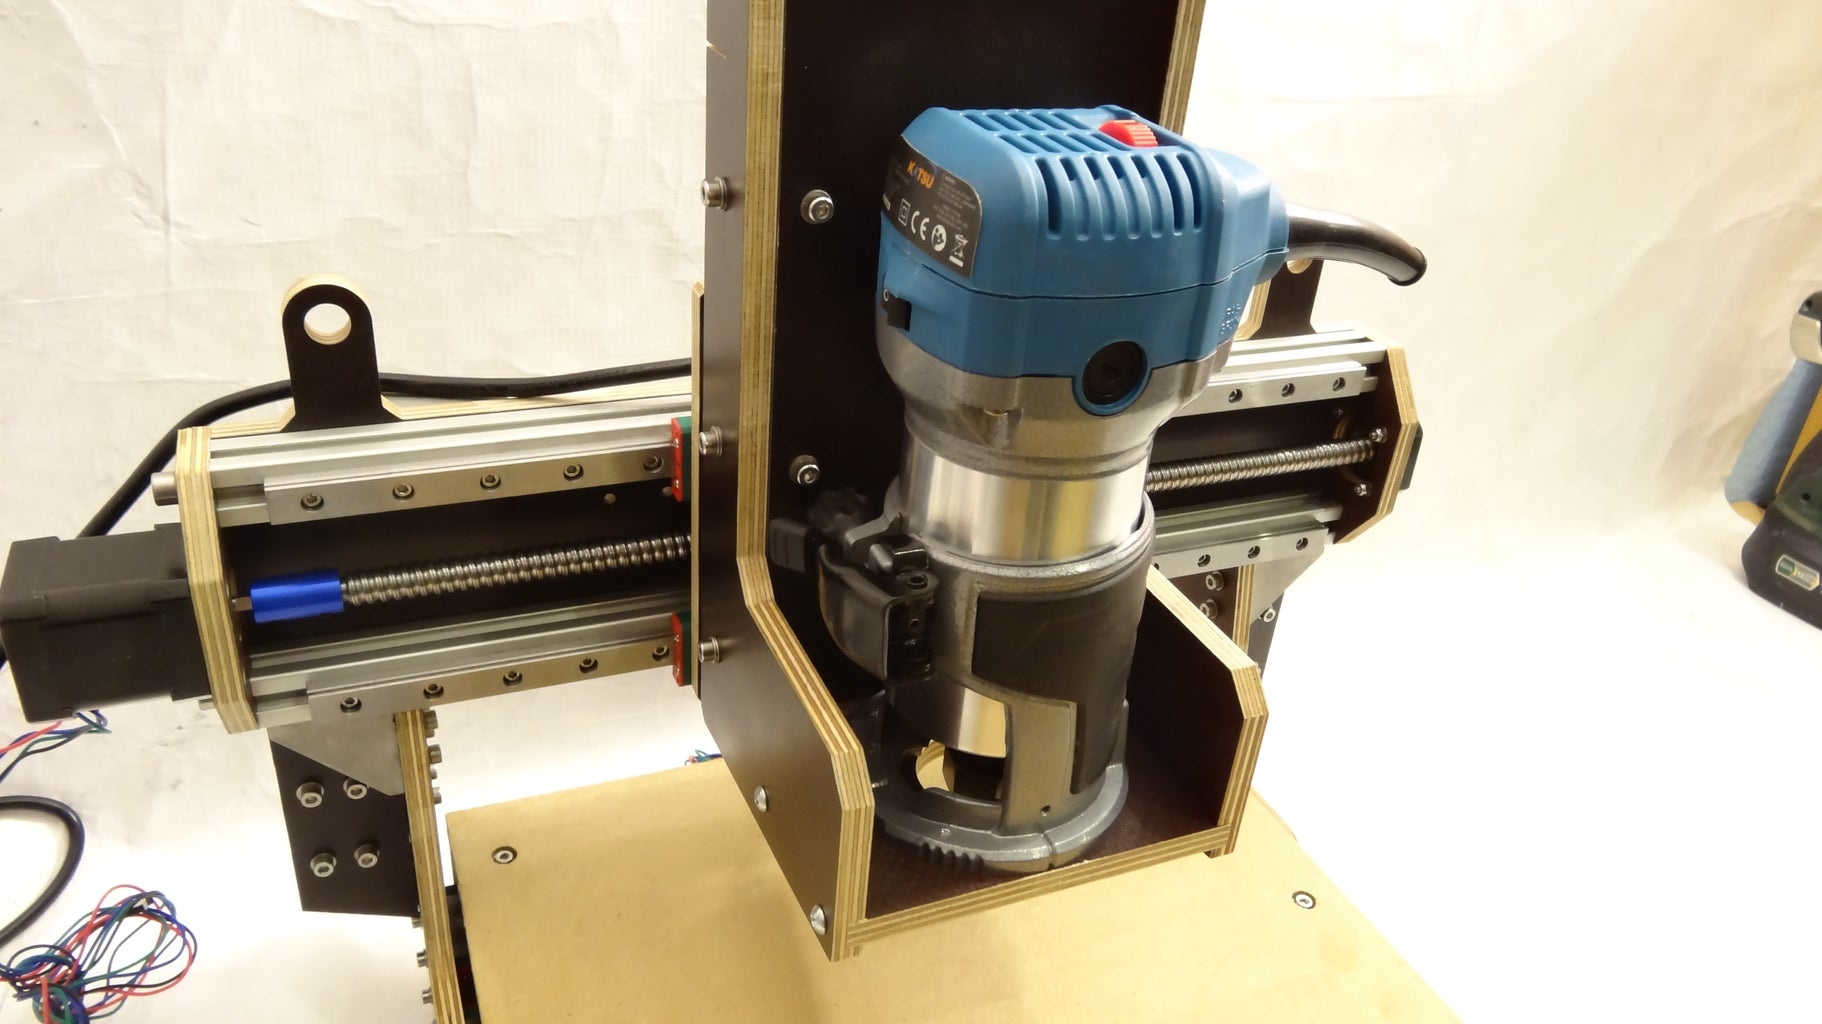 Attach the Spindle Mount to the Machine